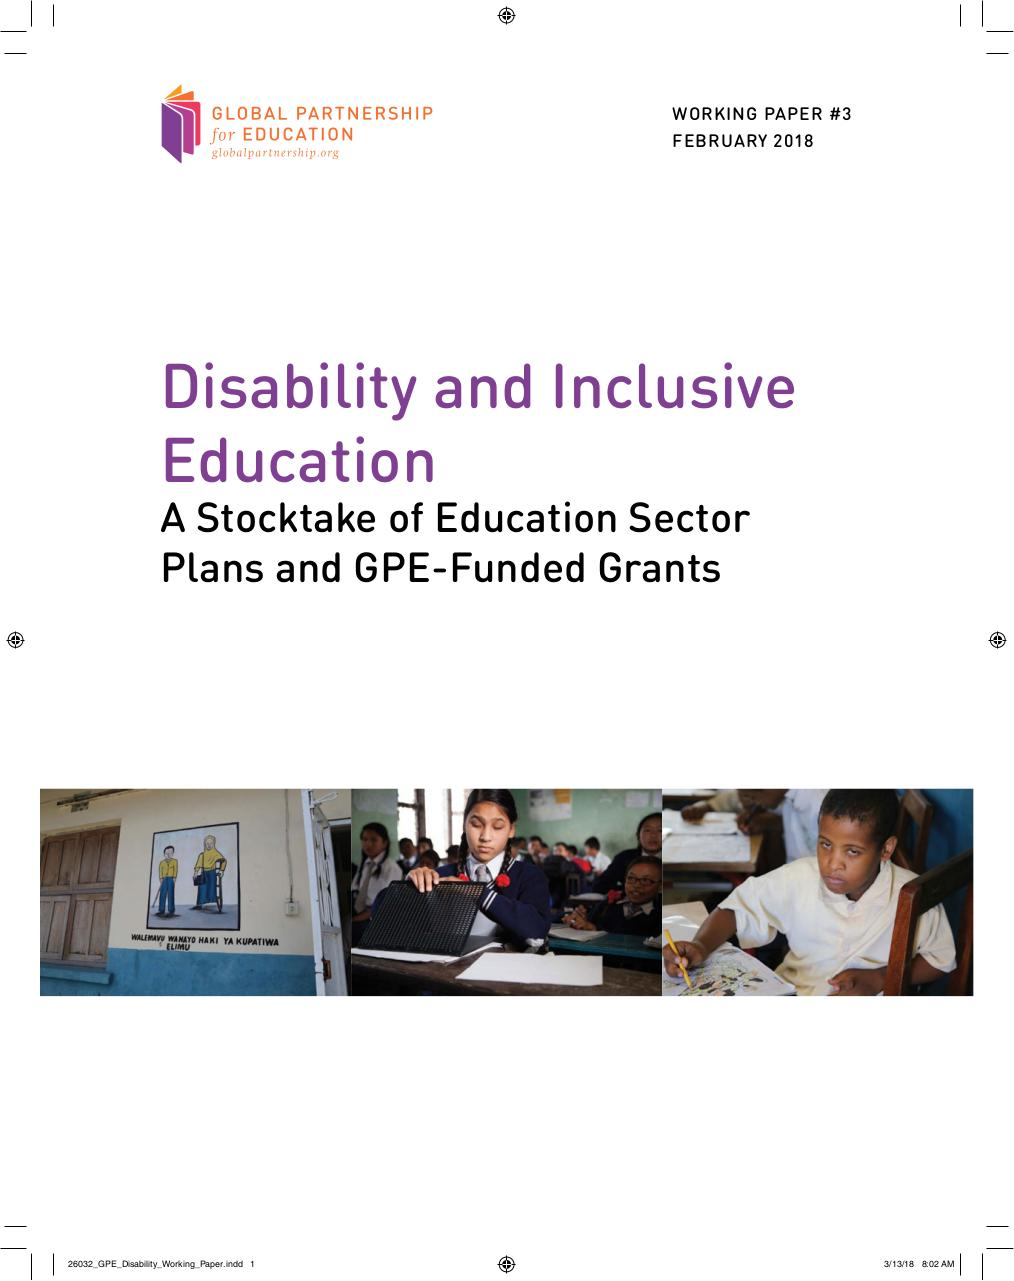 Aperçu du document GPE - Disability and Inclusive Education A Stocktake of Education Sector Plans and GPE-Funded Grants.pdf - page 1/83